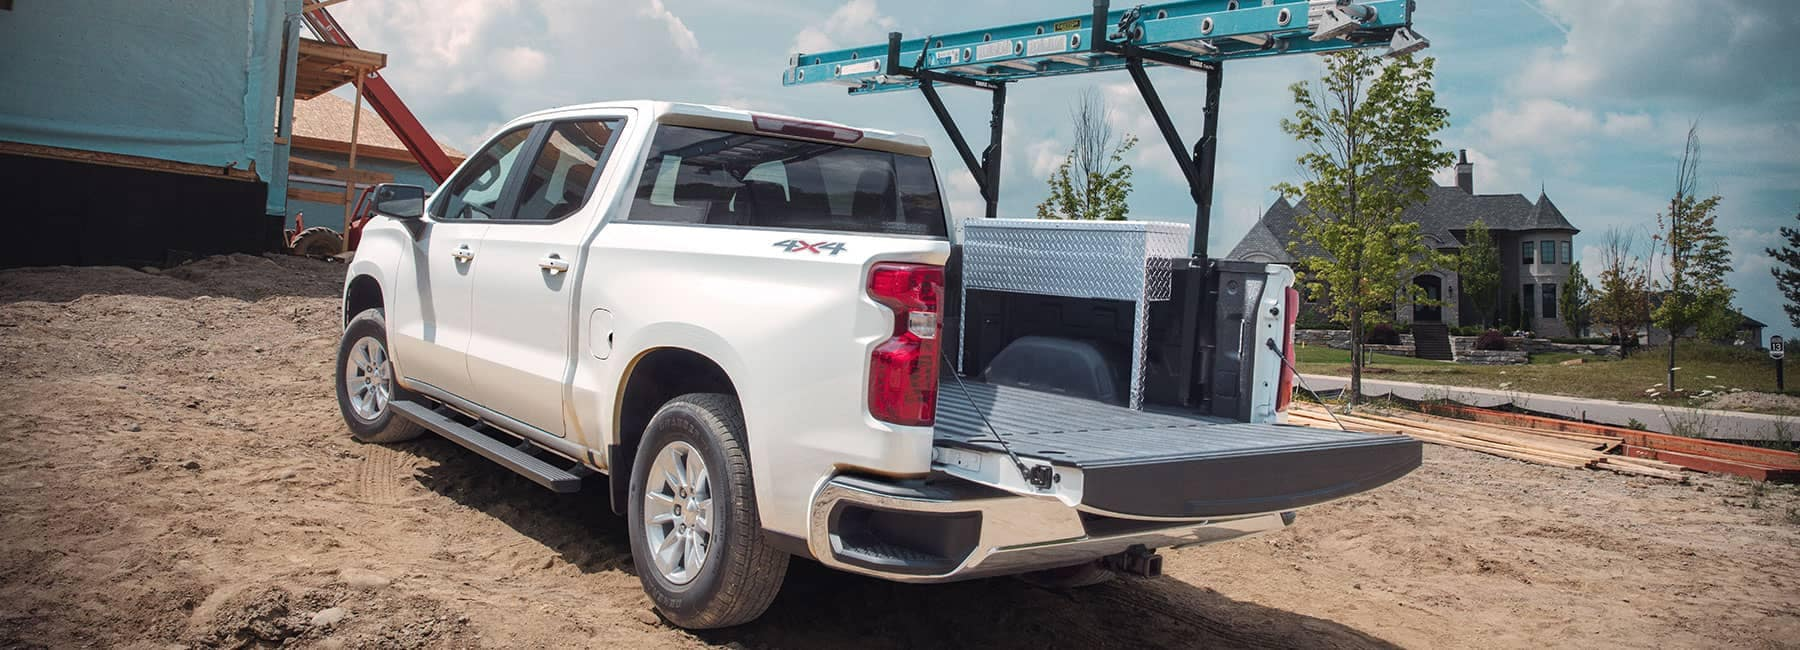 2019 Chevrolet 45 white truck open trunk